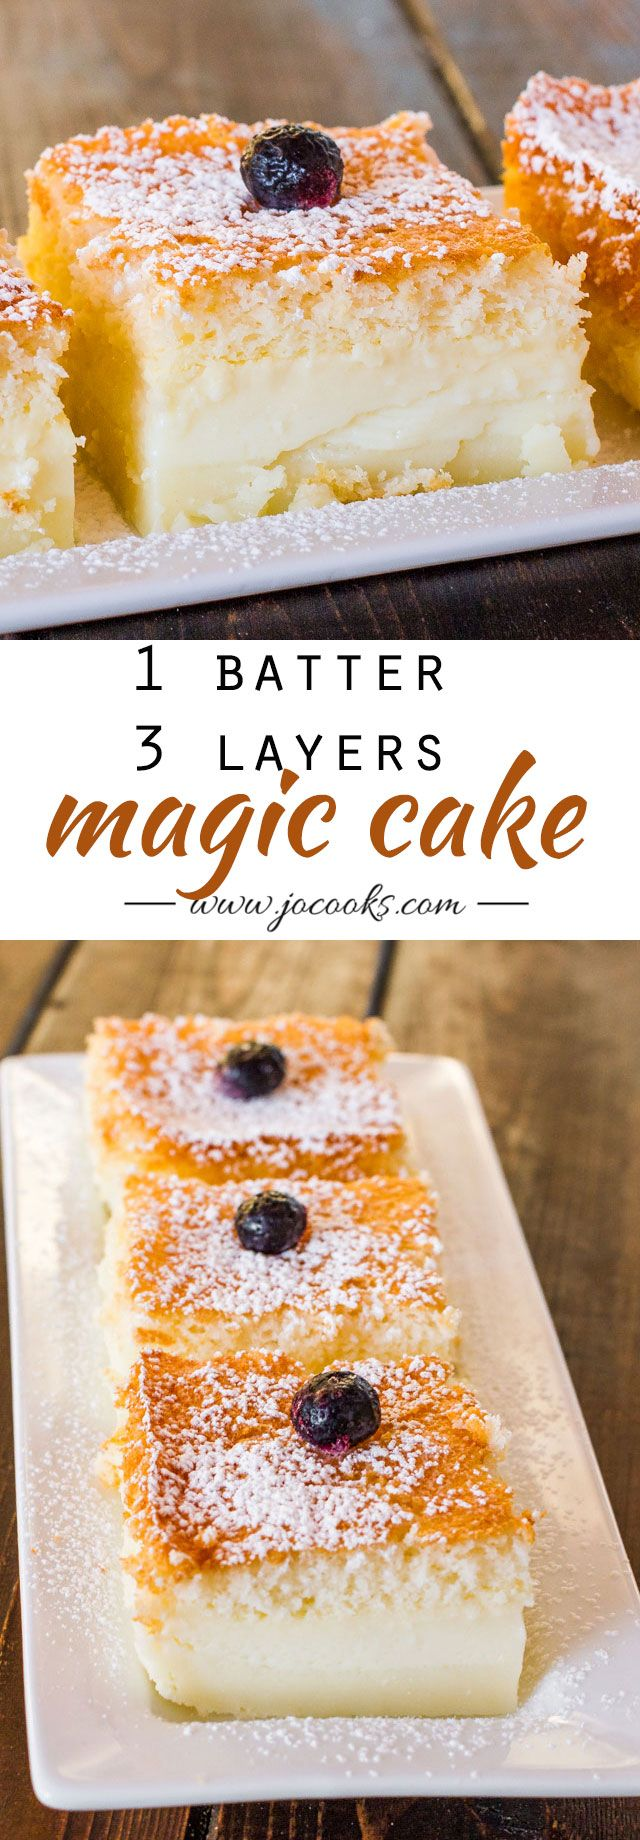 Magic Cake - The hardest thing you have to do is make the batter, pour the batter in a 8 inch x 8 inch baking dish, place it in the oven and let the magic happen. After an hour you have a perfect 3 layer cake with the most delicious custard layer.